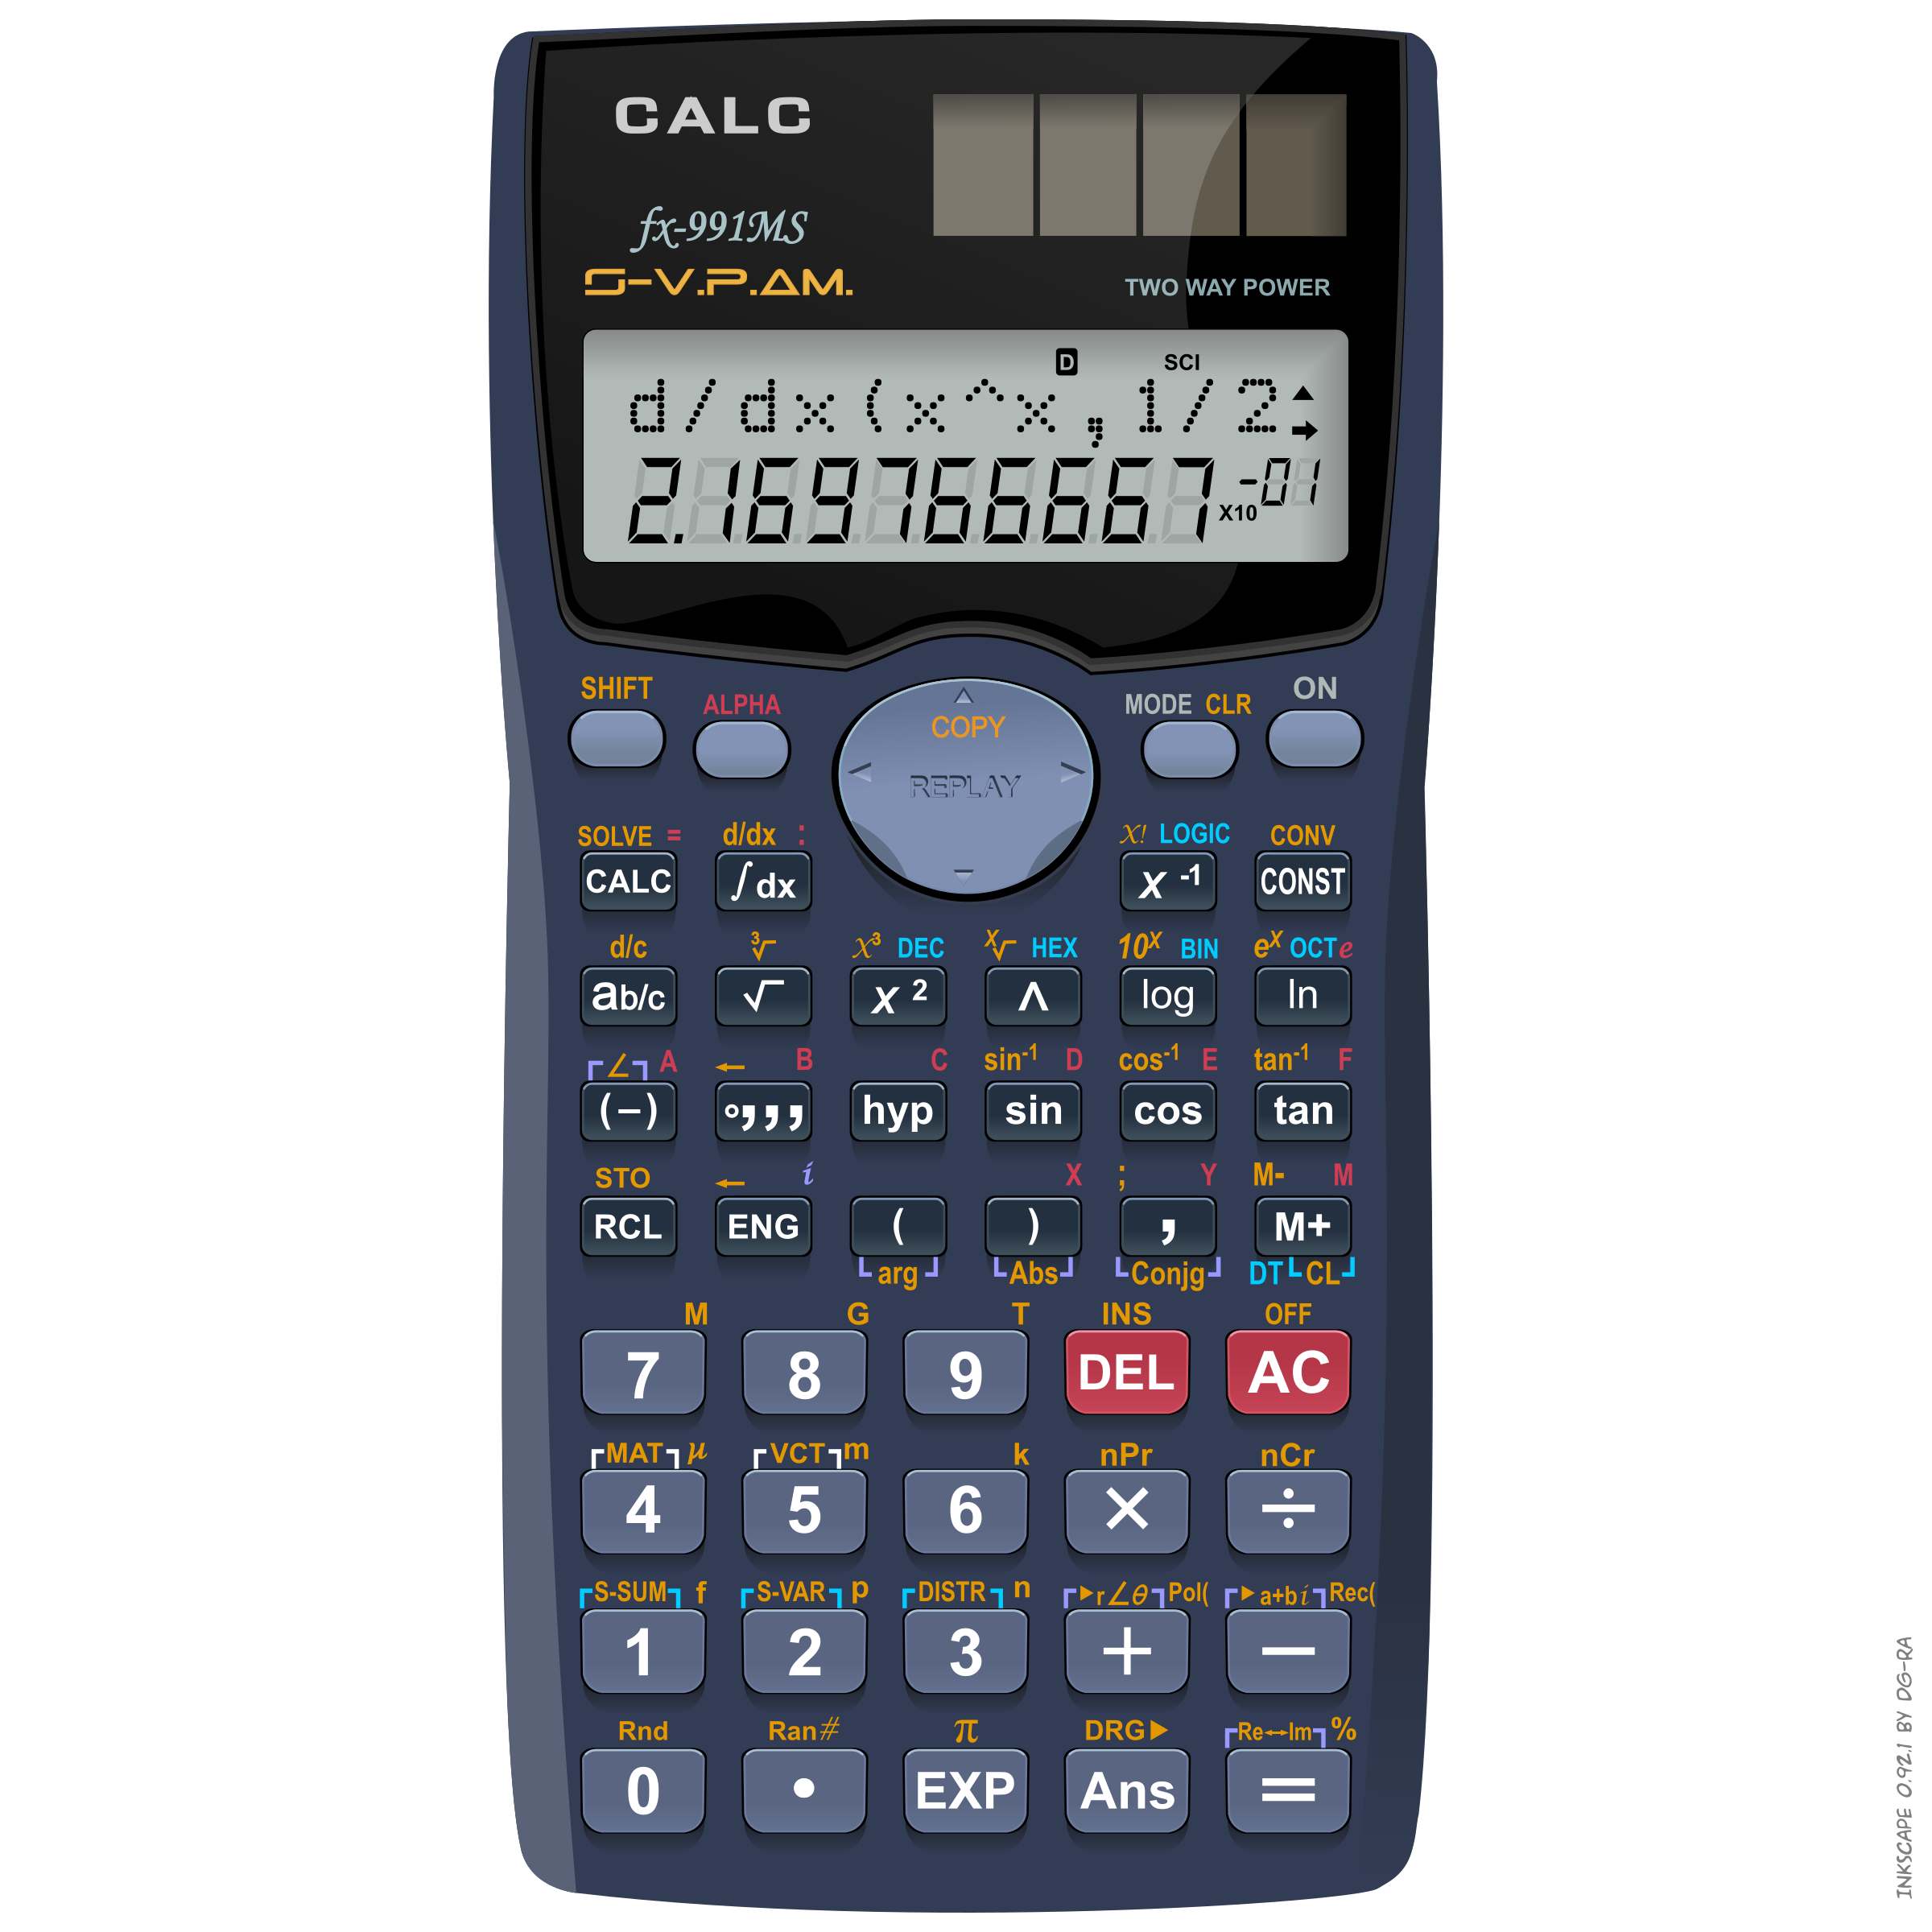 Scientific Solar Calculator – Calc fx-991ms by DG-RA